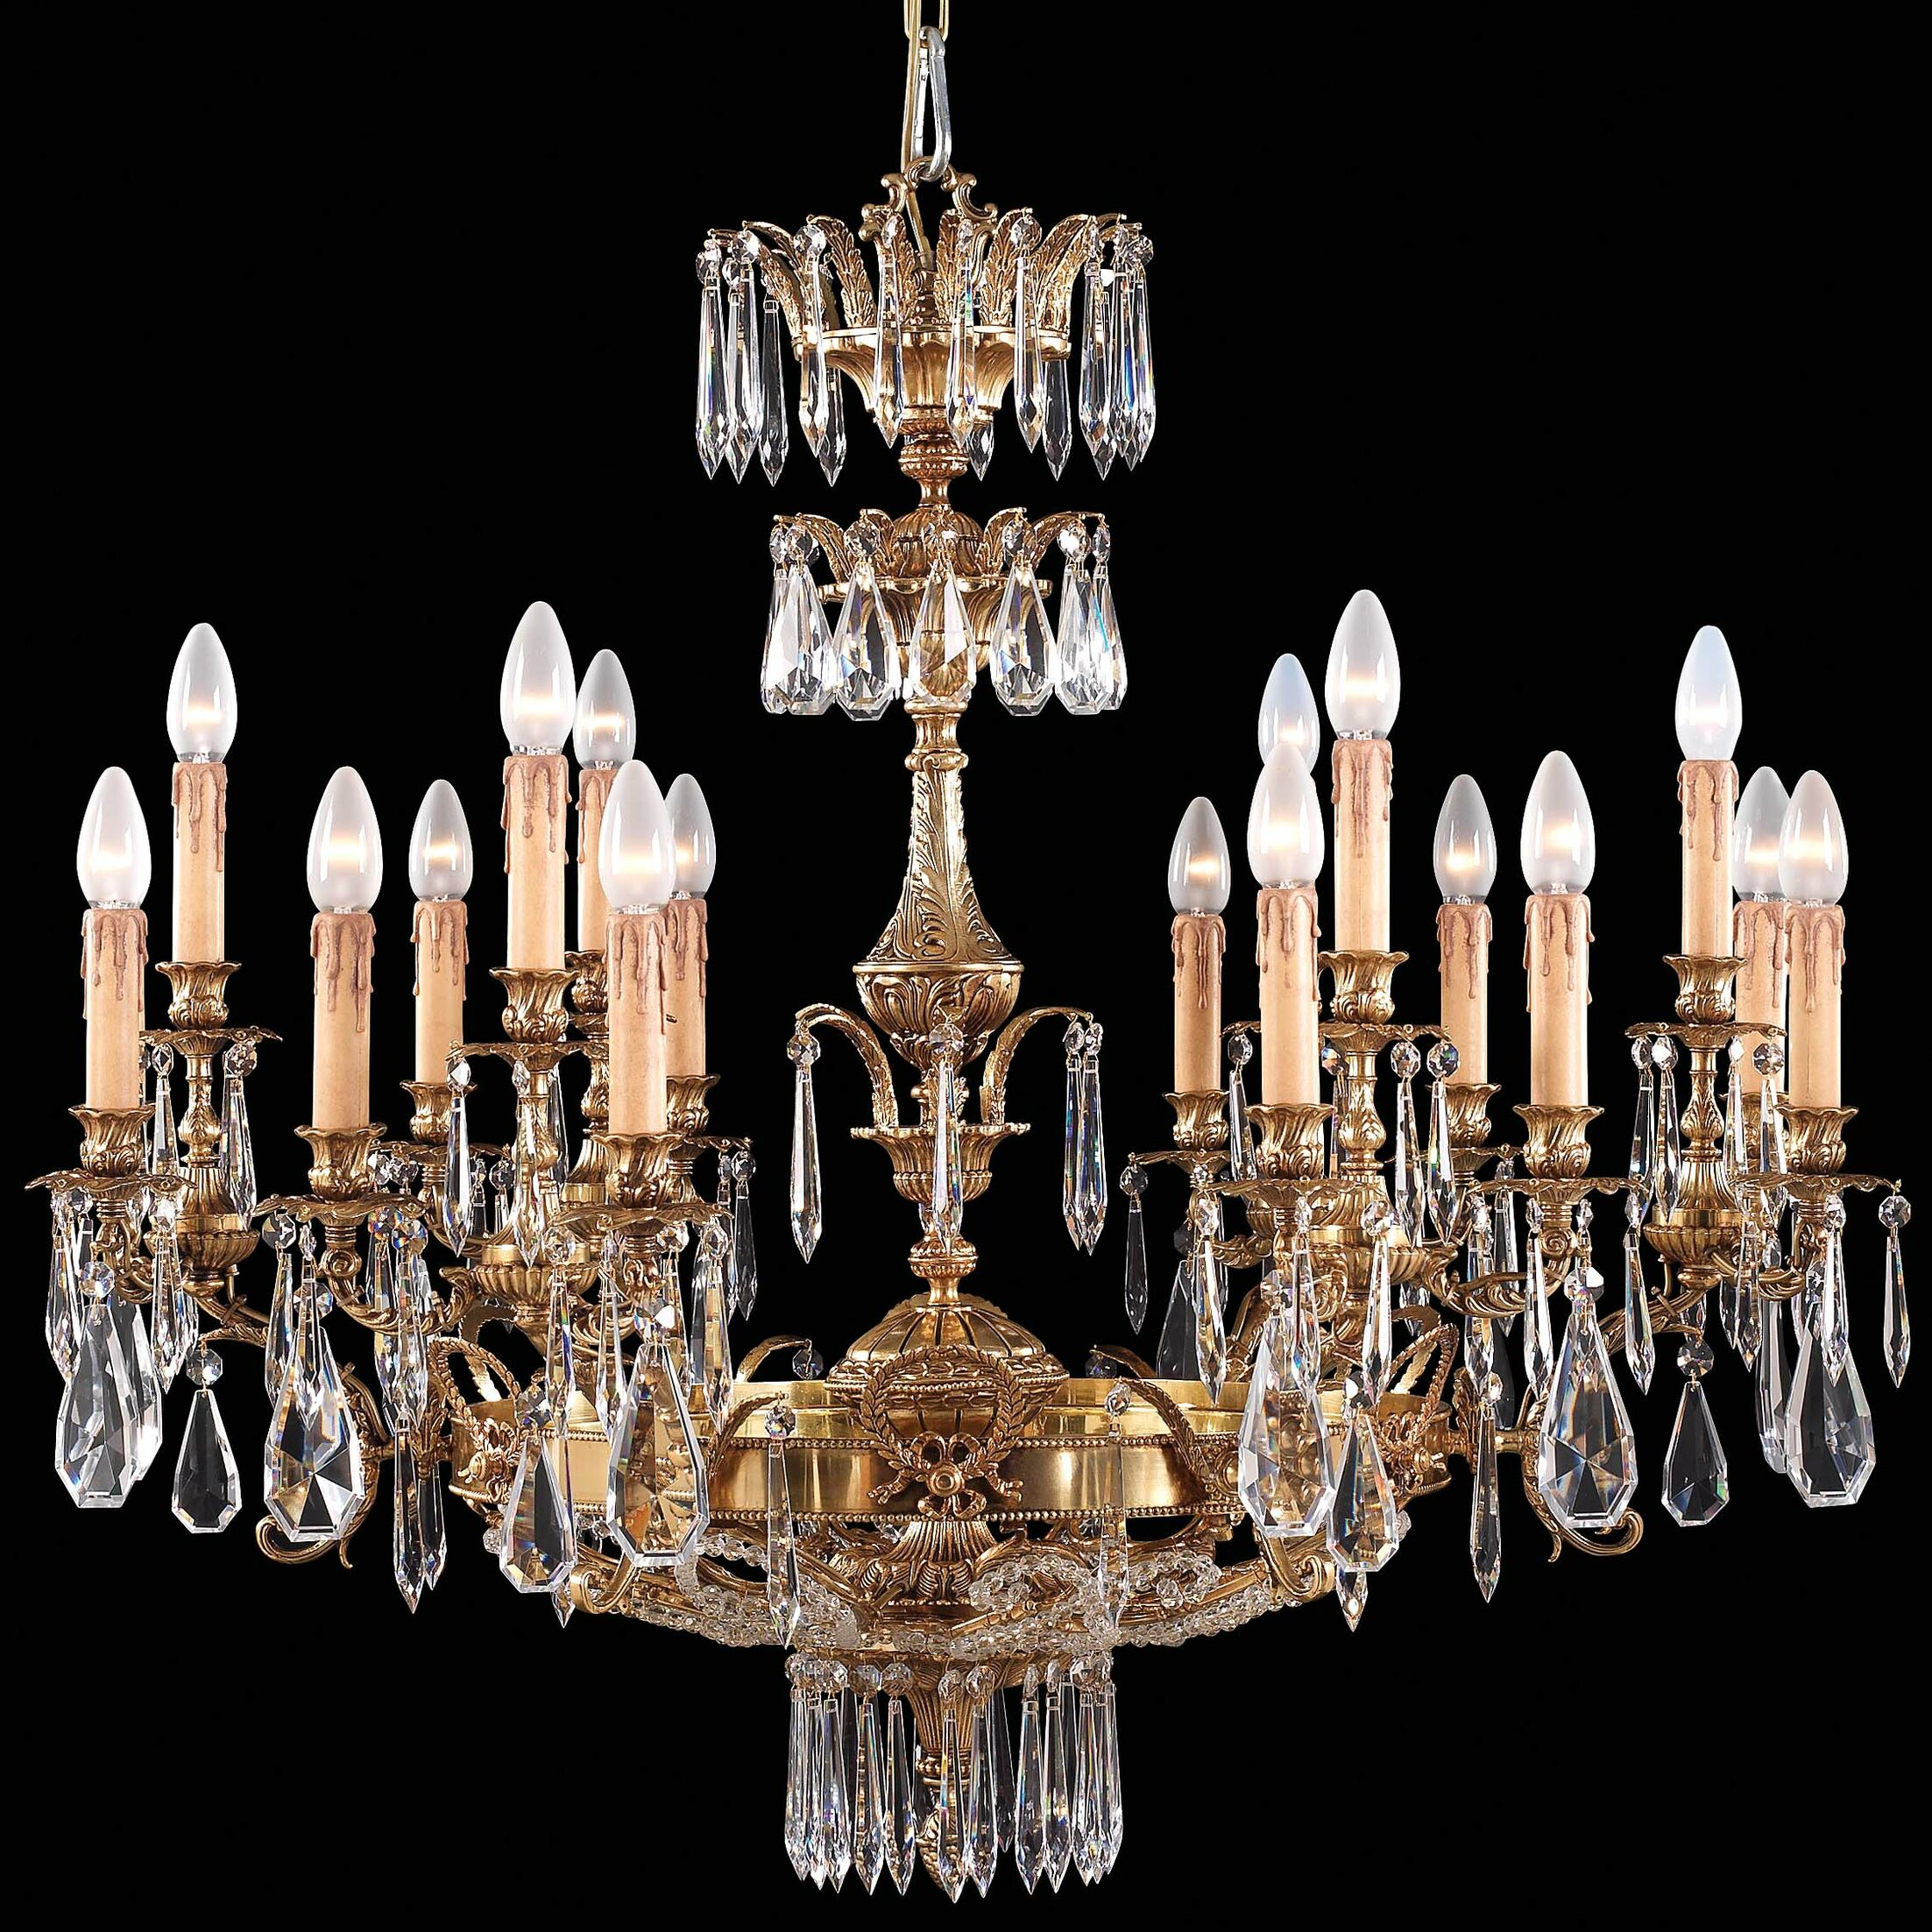 Vintage 18-Light Candle Style Chandelier